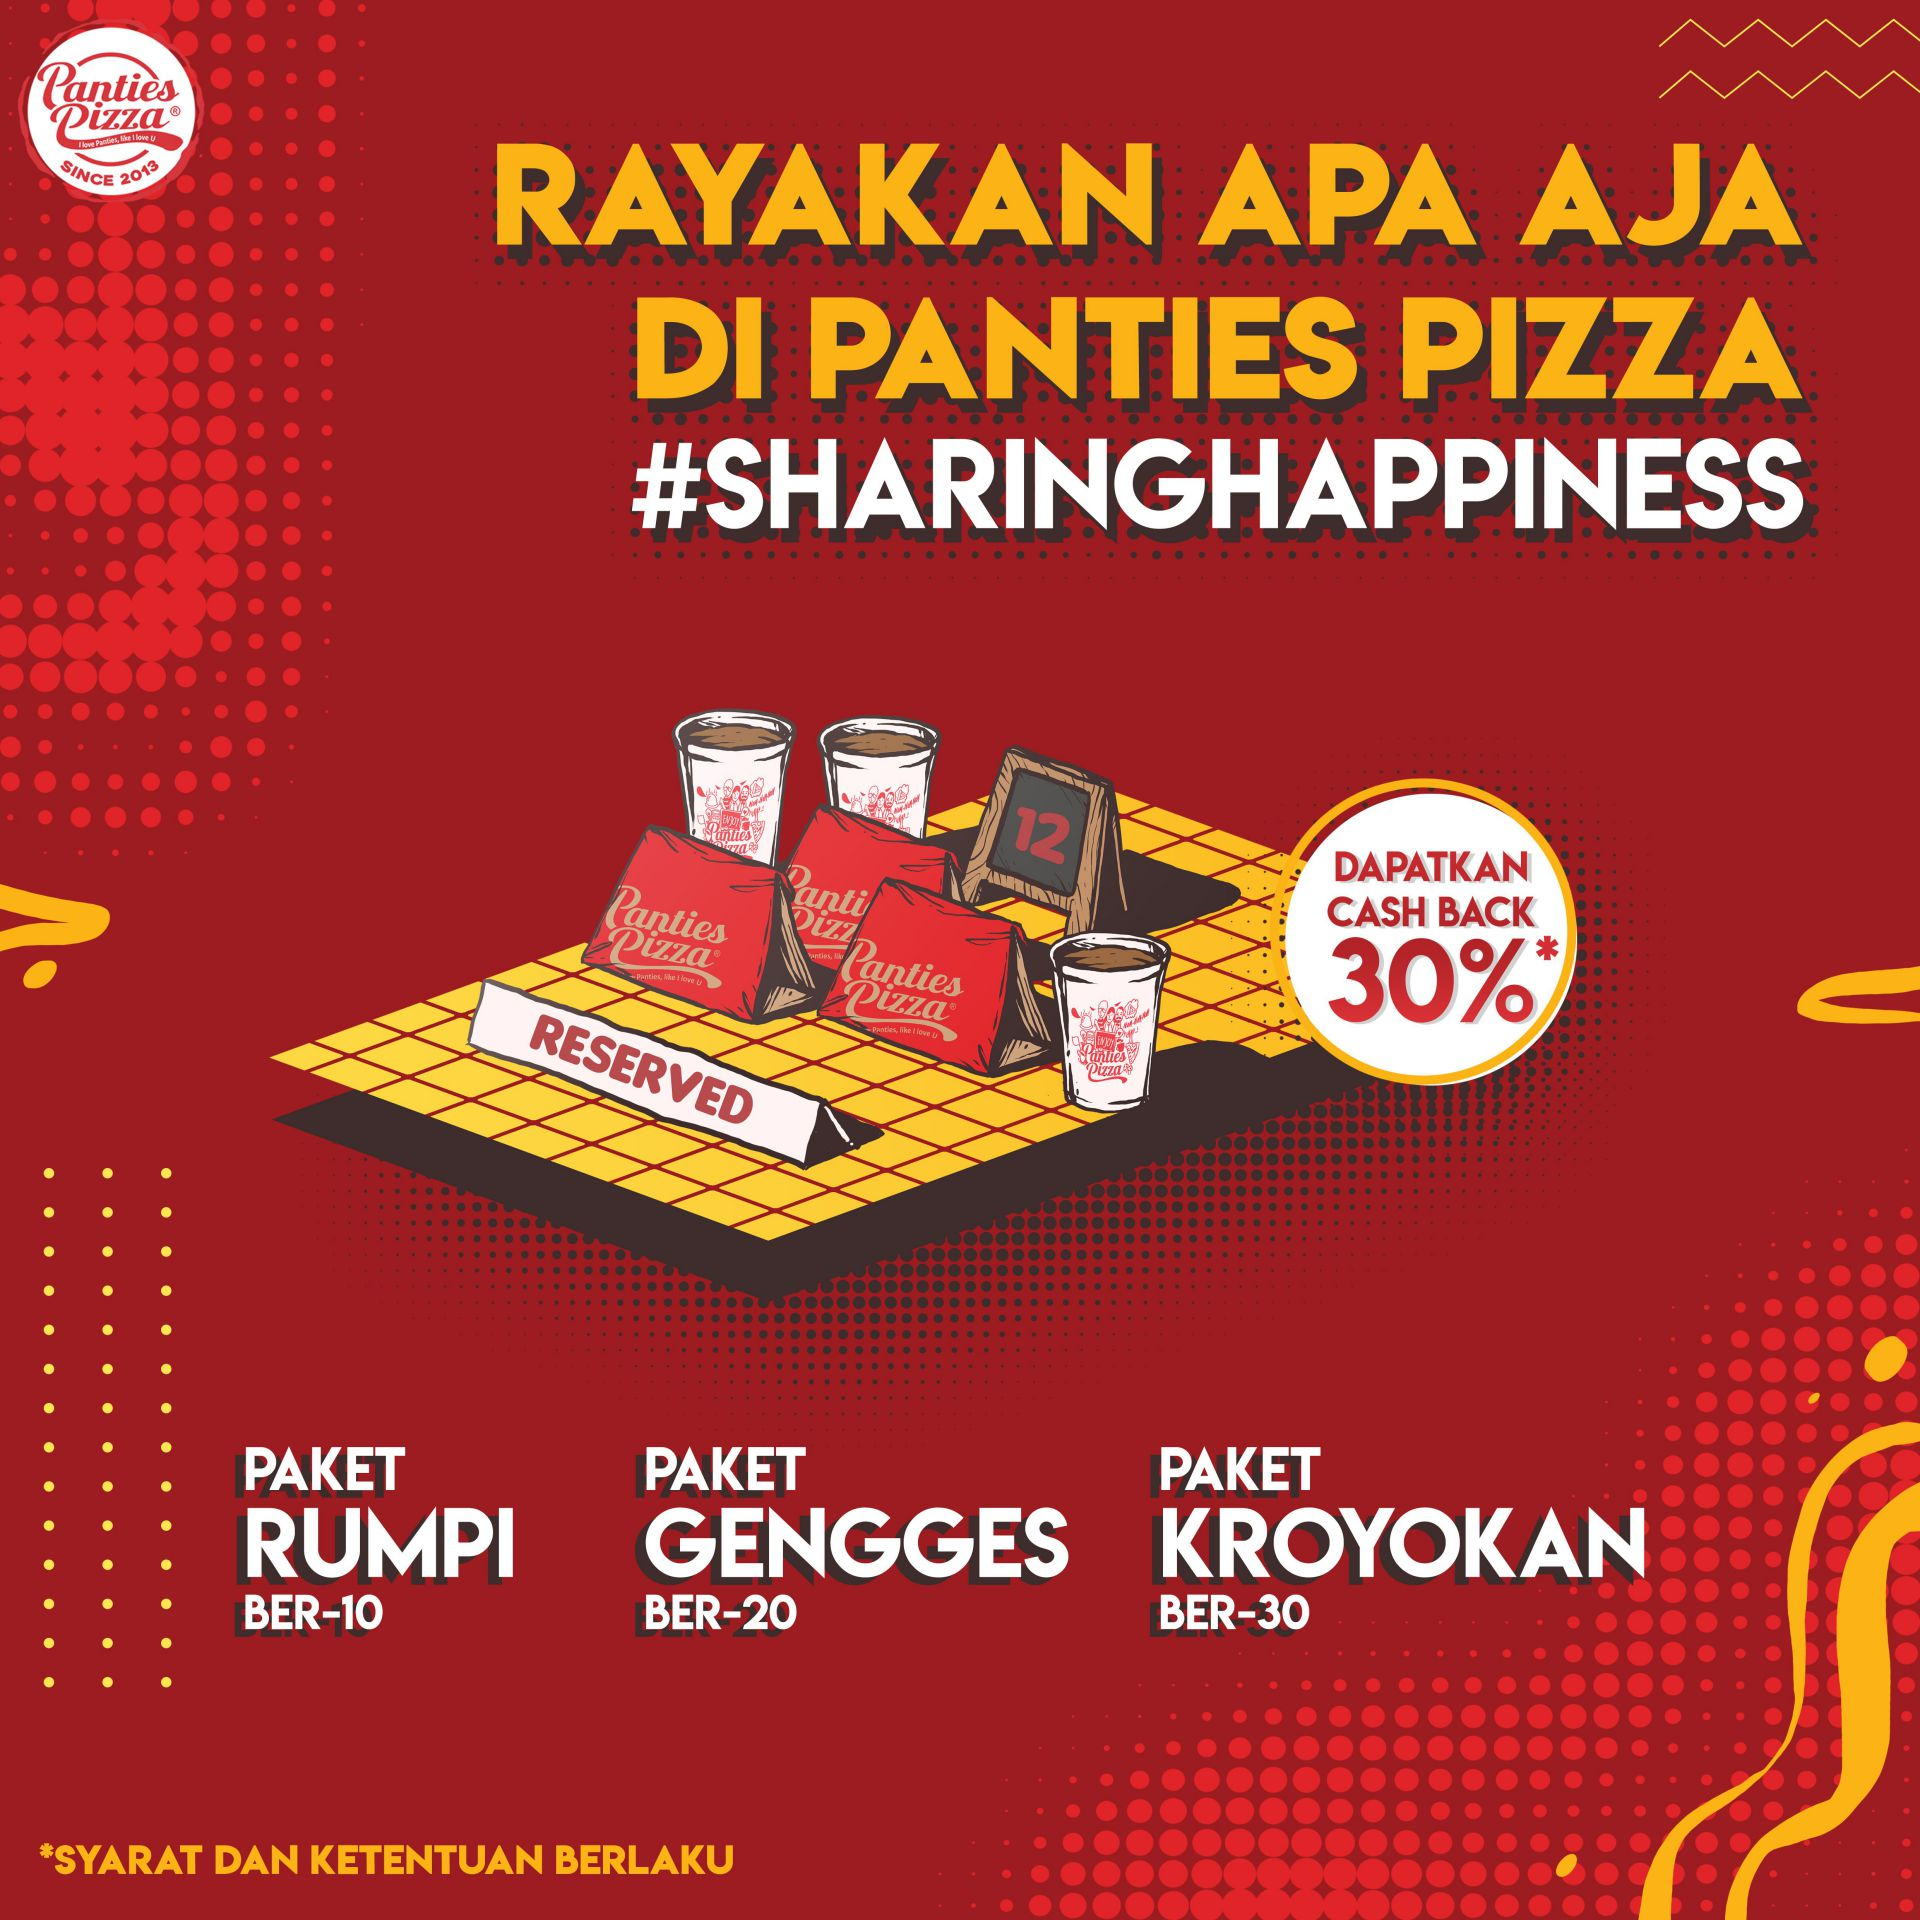 Rev Sharing Happiness Promo Sharing Happiness Panties Pizza Drink Inspiration News Pasta Pizza Promo Rice Single Slide